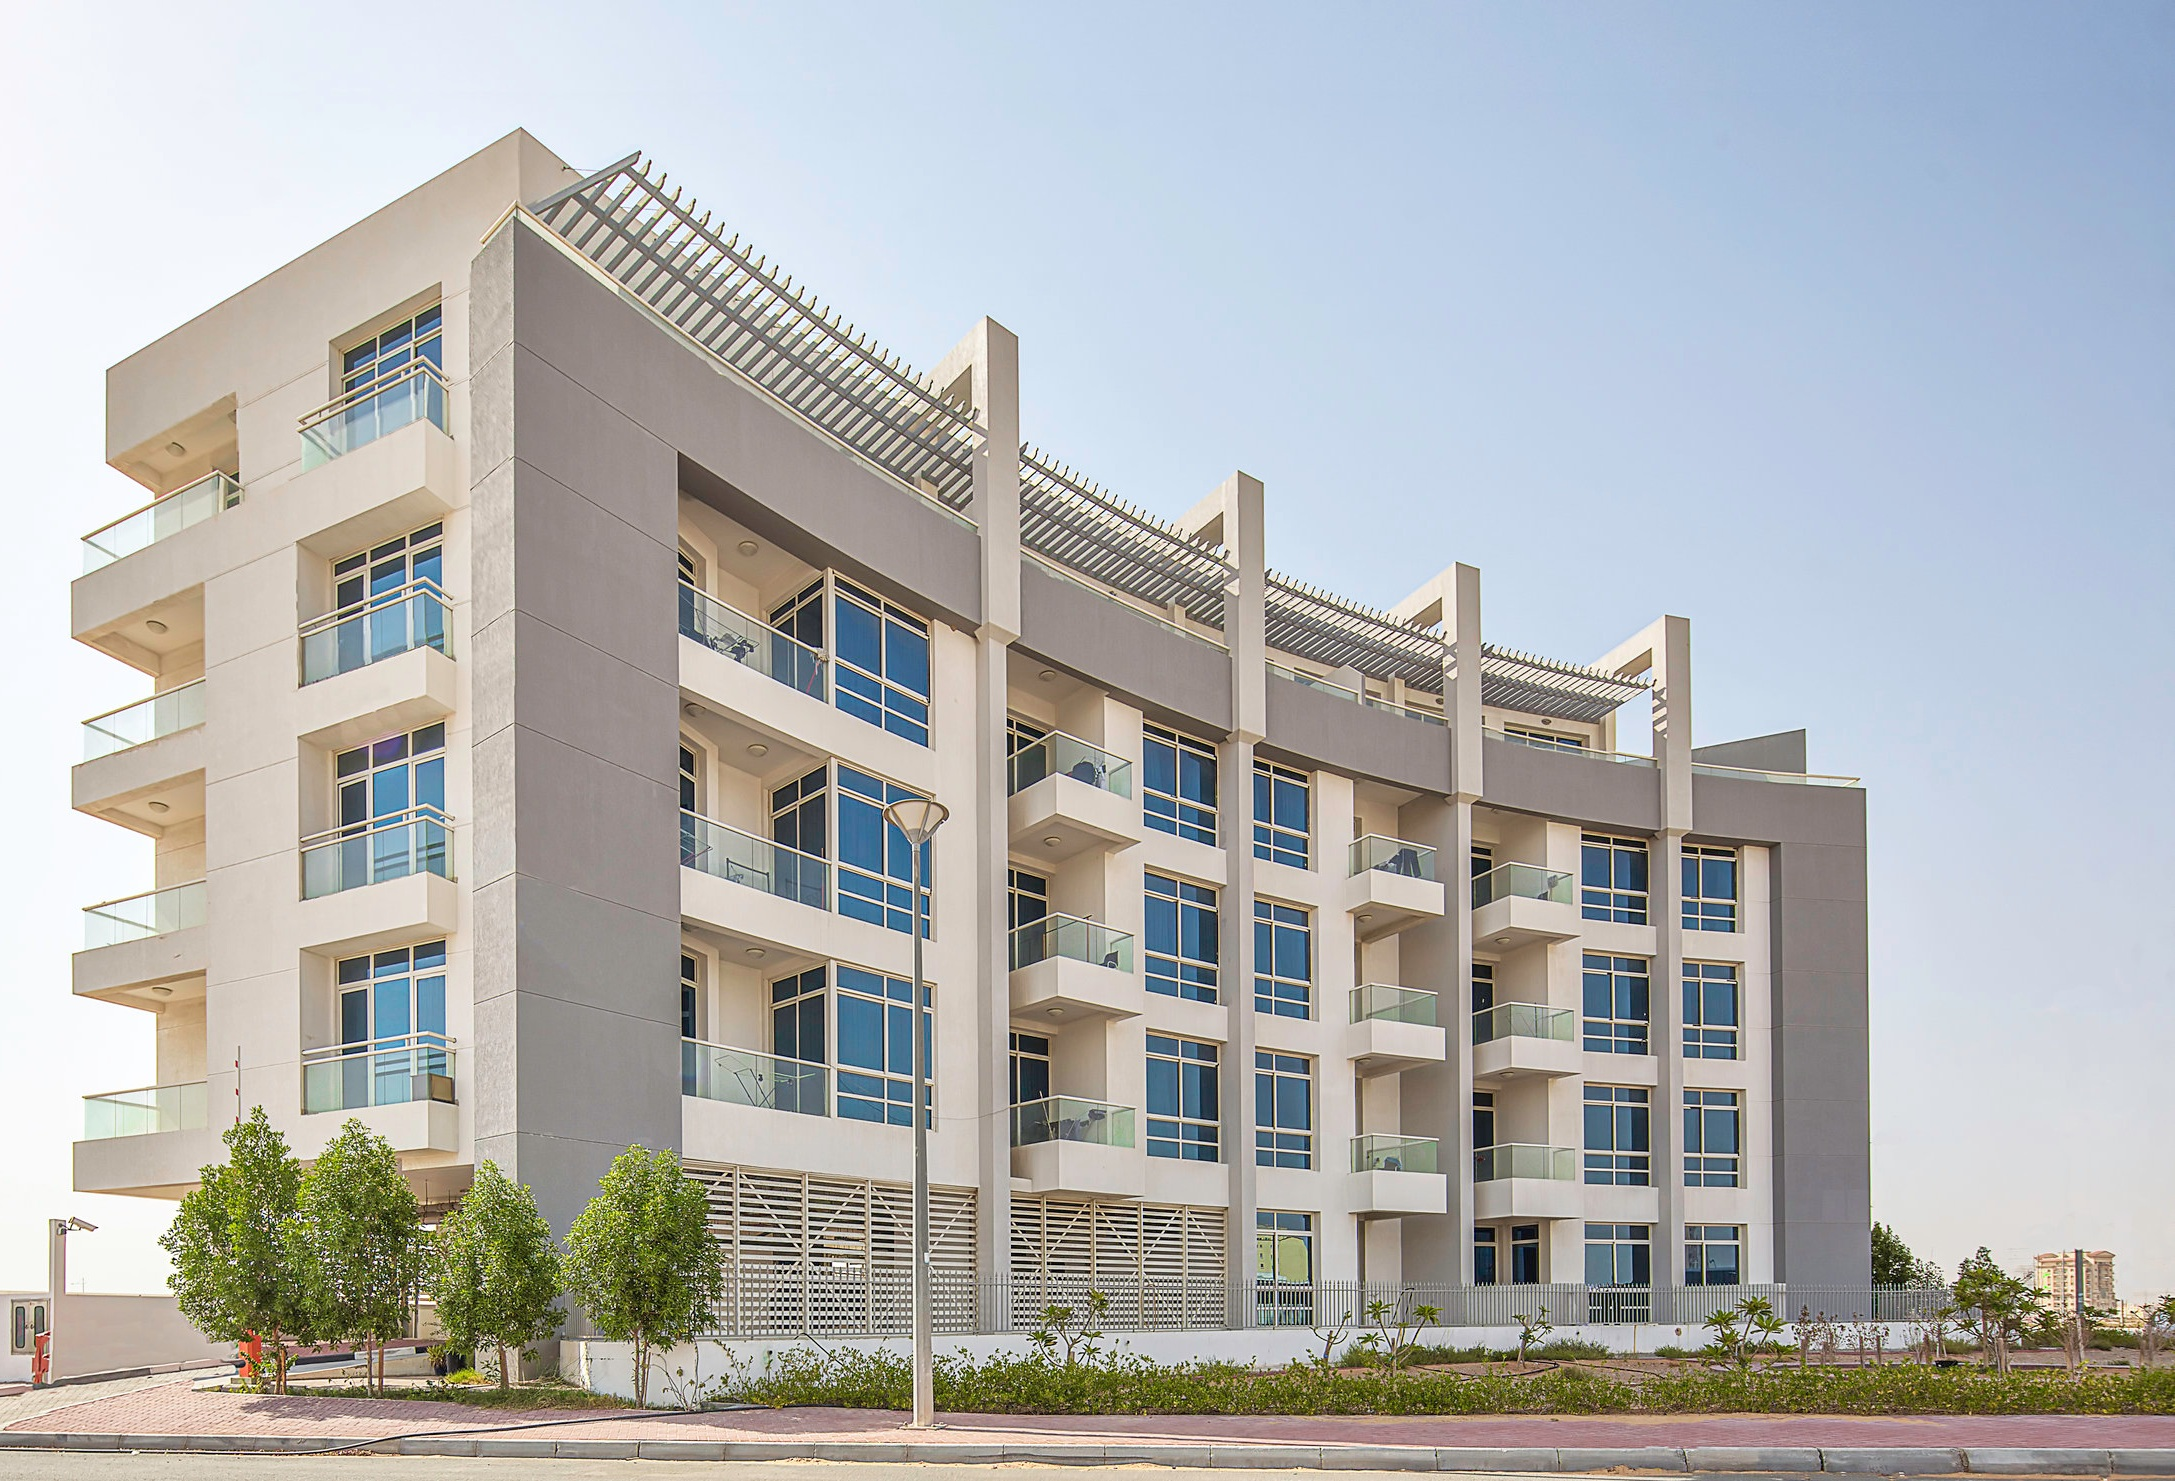 F01 - F01 by Aurora located in Al Warsan 4 is a development focused on creating boutique apartments on a smaller scale. Consisting of 47 apartments with a built-up area of 50,000 sq. ft., the development encompasses Aurora's vision in a modern style.